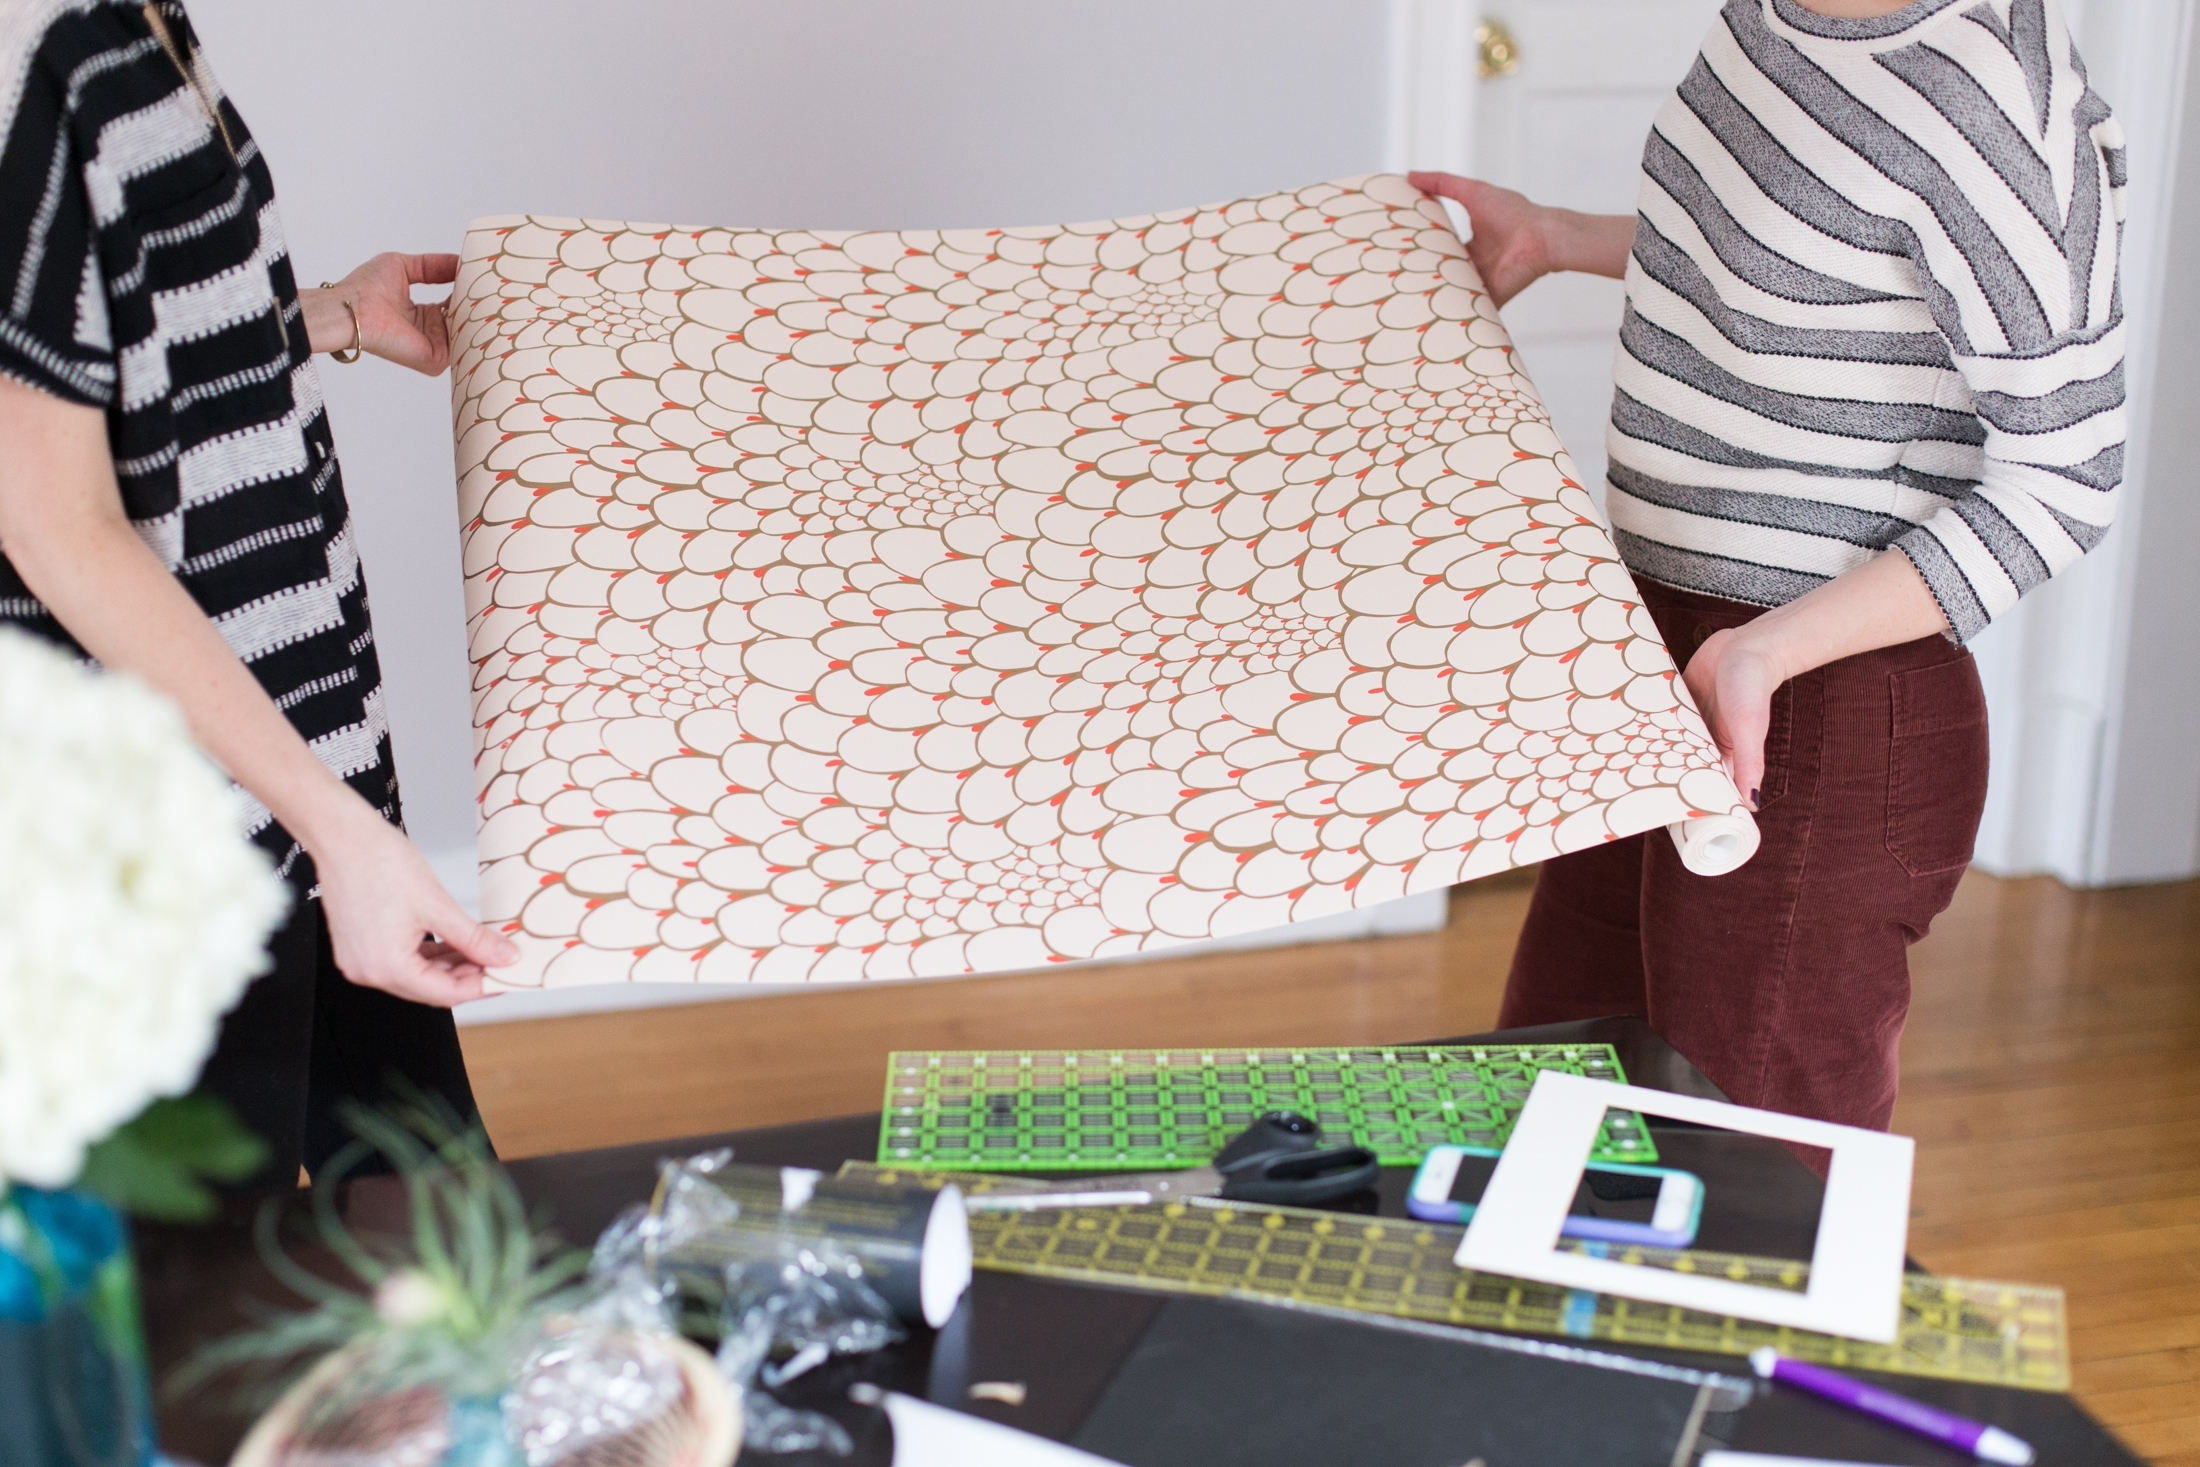 Current Diy Wall Art Projects Regarding Diy Wall Art Projects With Wallpaper (View 5 of 15)